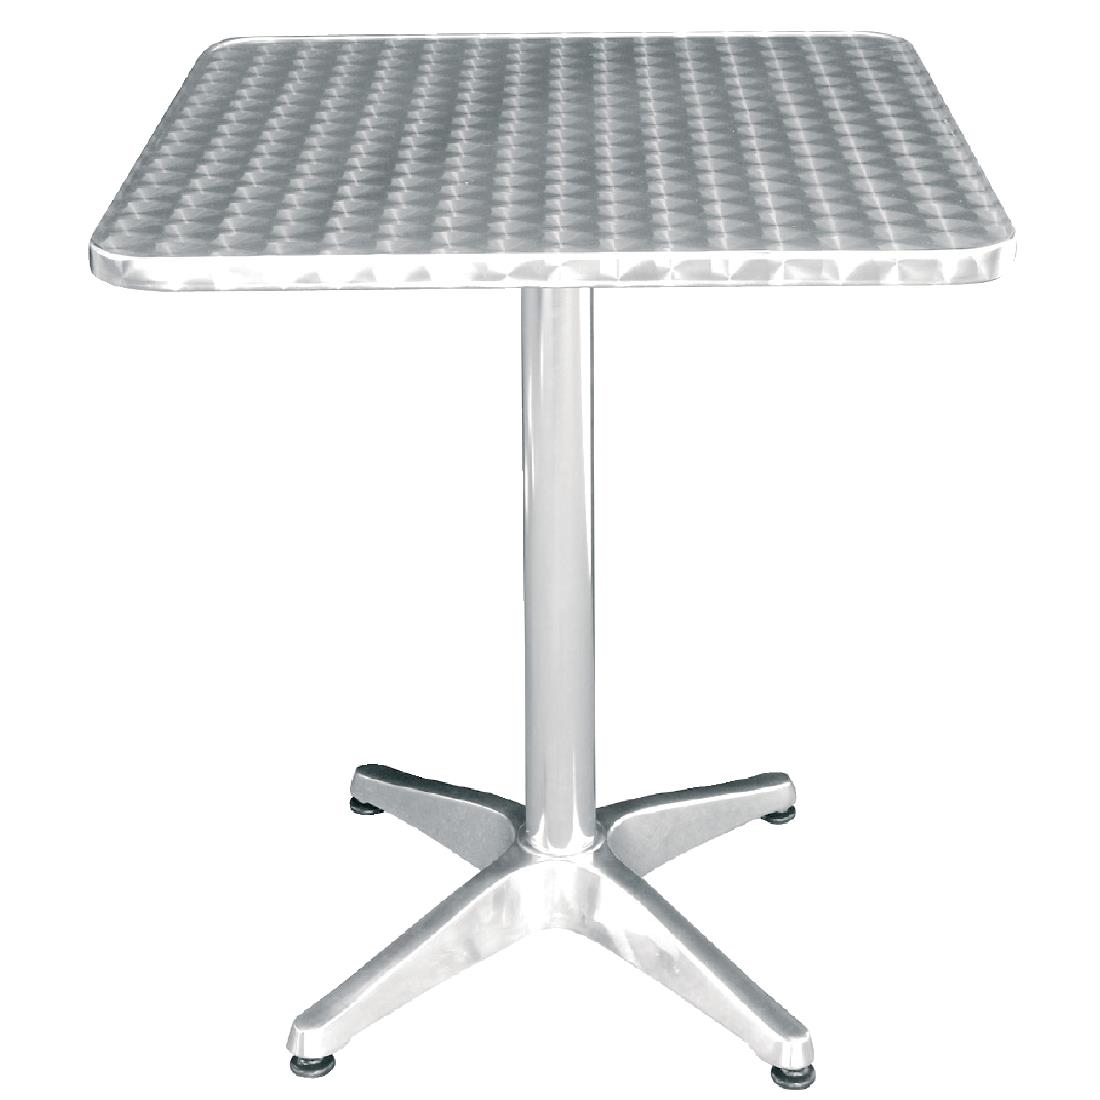 Table Bistrot Aluminium Details About Bolero Square Bistro Table Made Of Stainless Steel And Aluminium 720x600x600mm